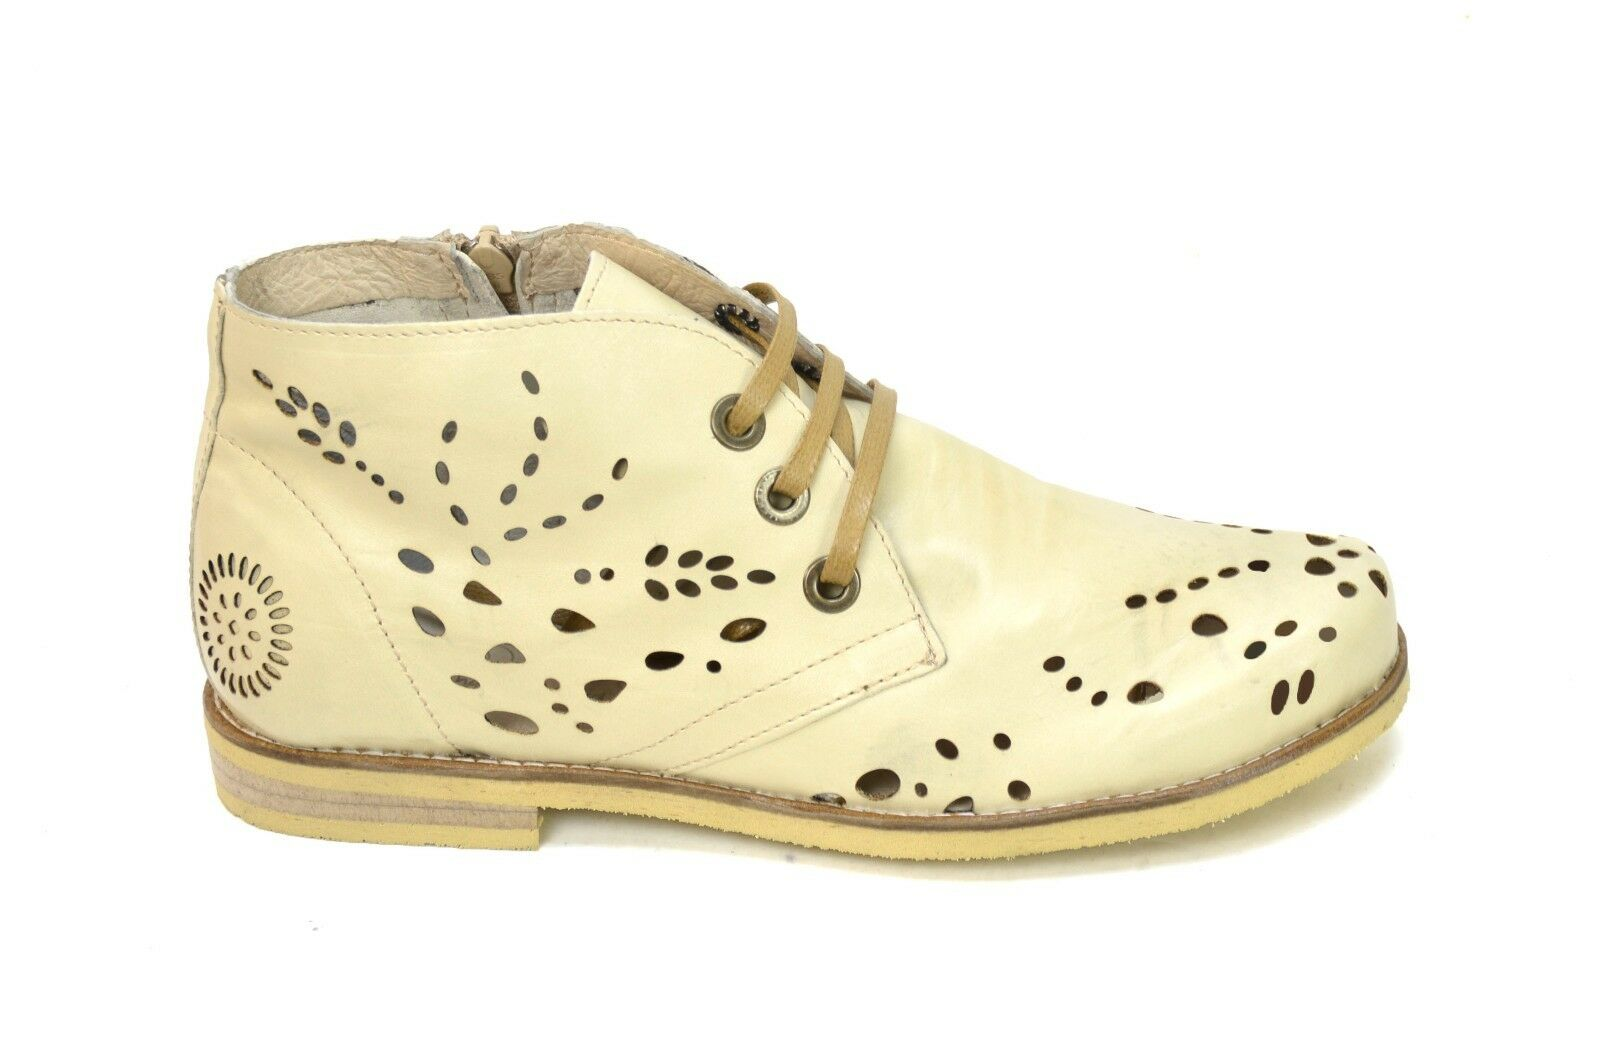 OGS Wide scarpe Angelina Tan Laser Perforated Leather Ankle stivali 3E wide